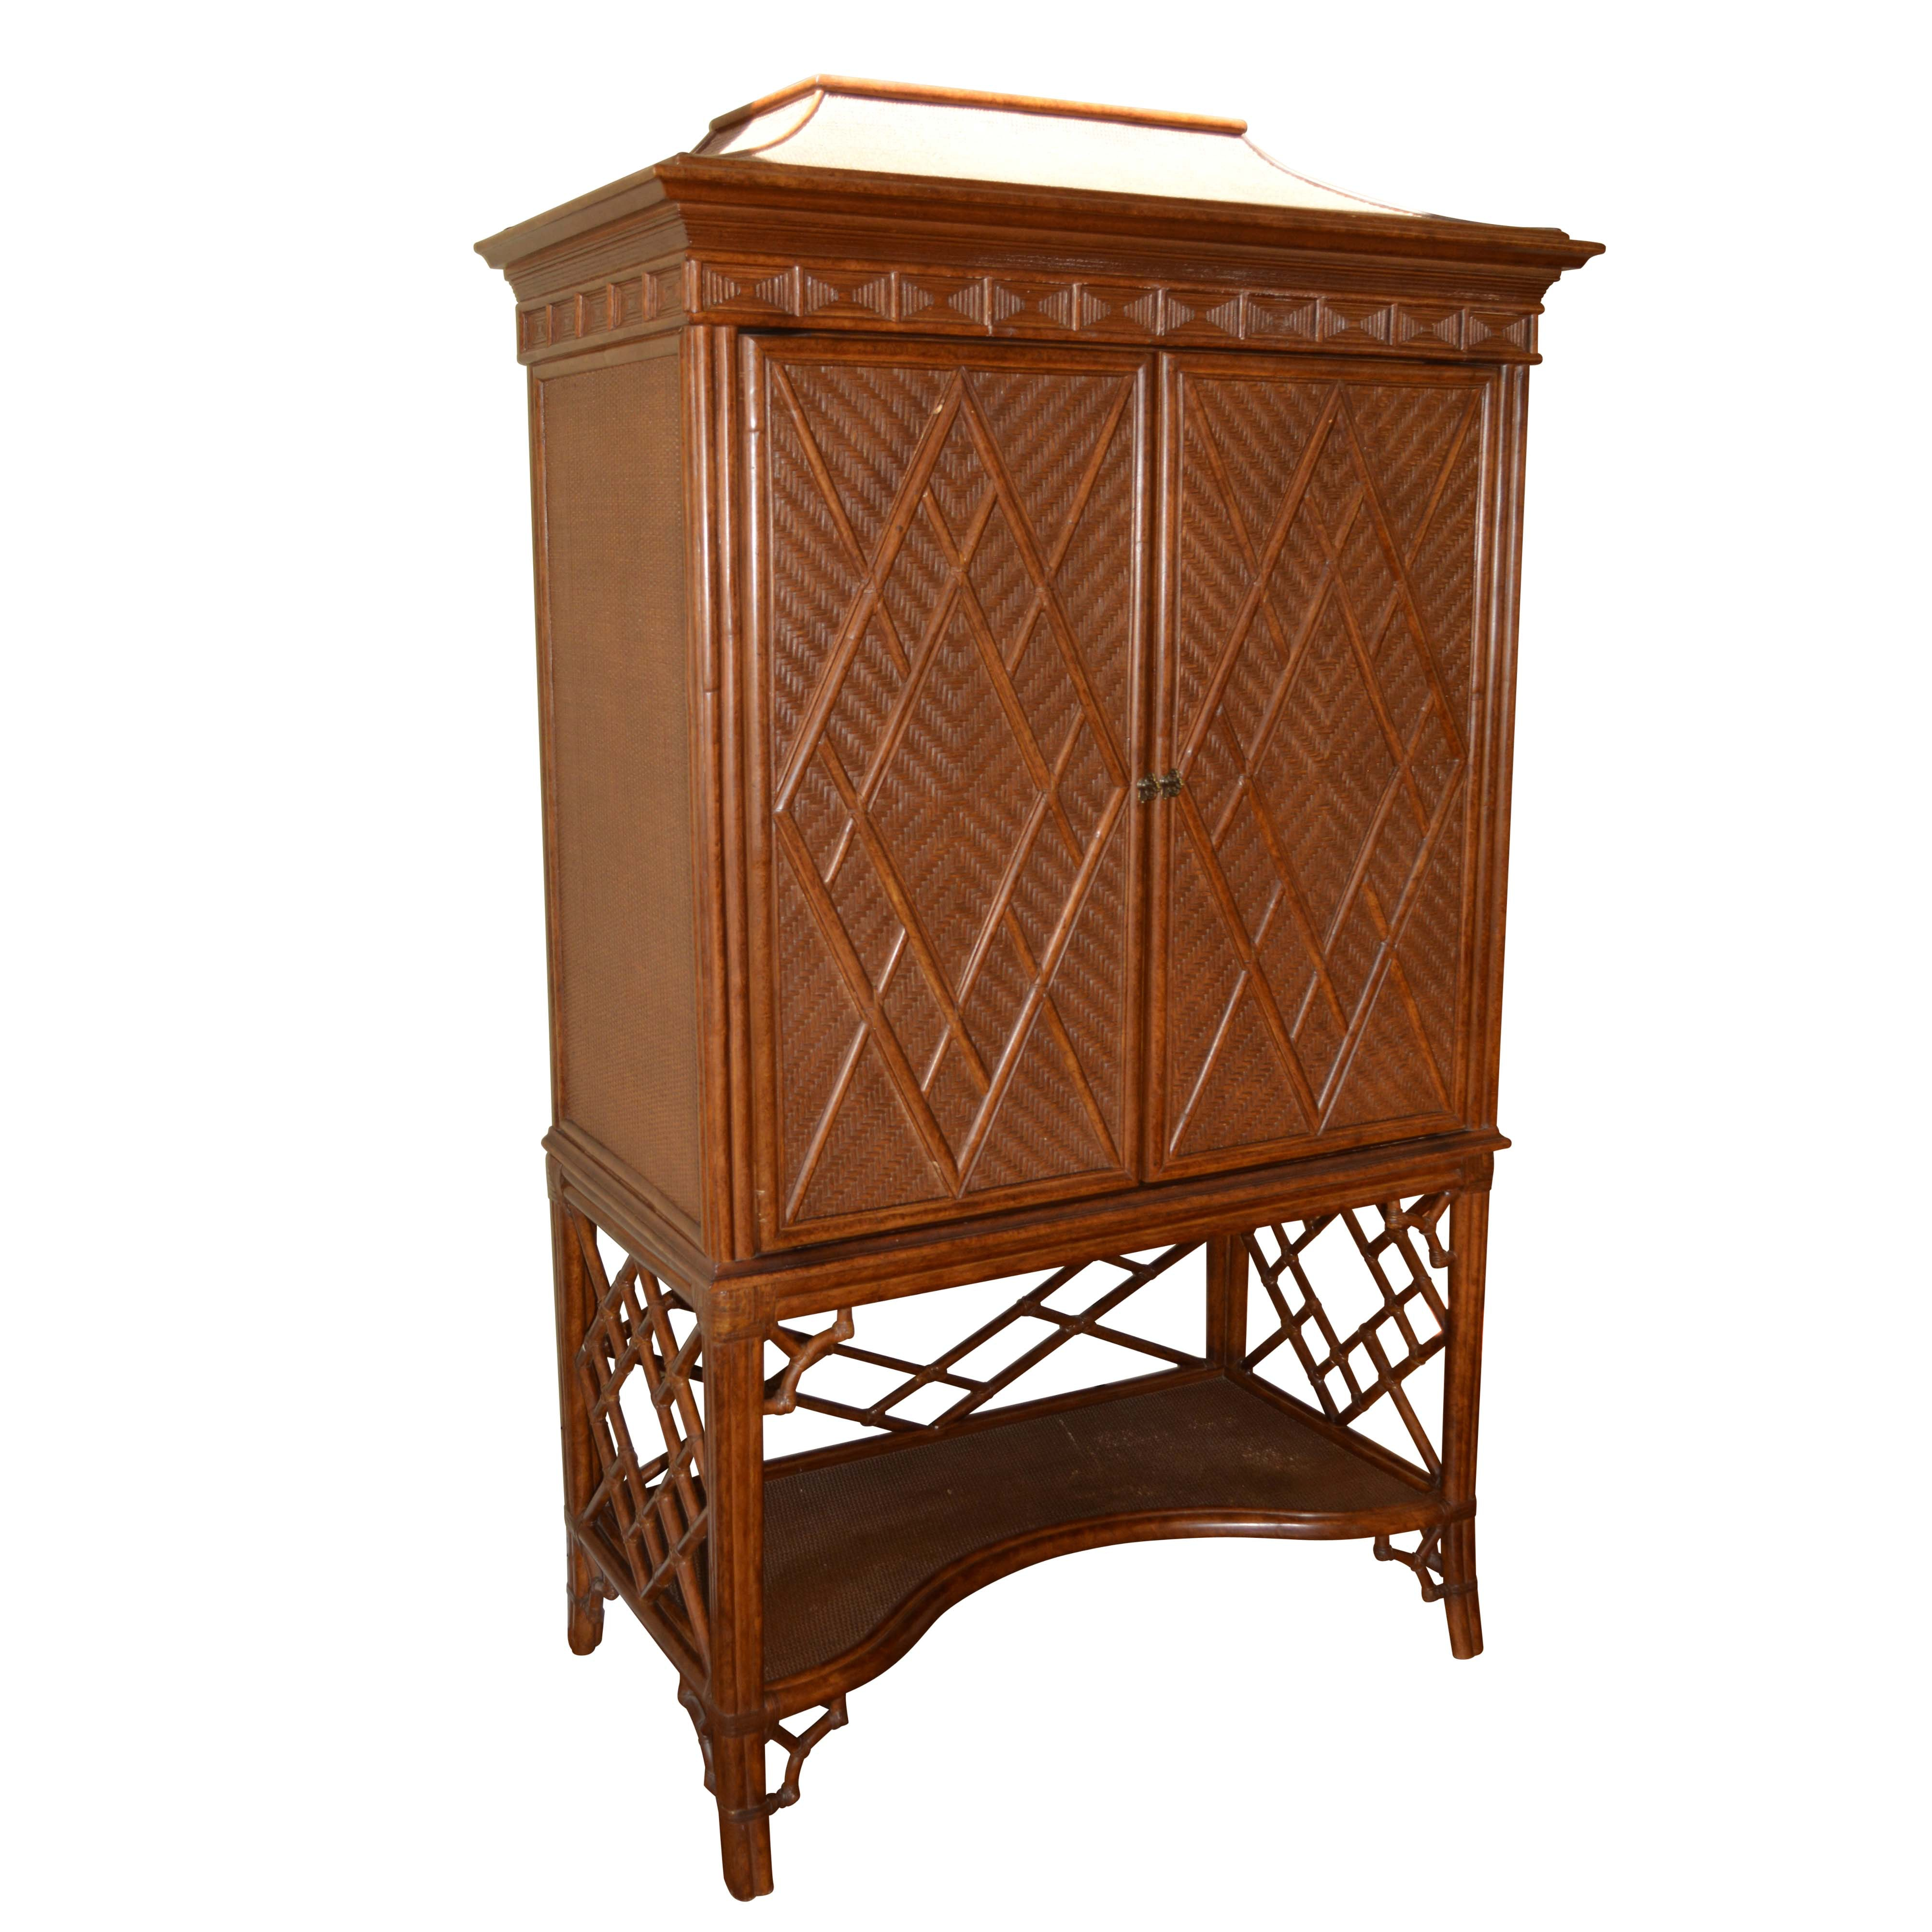 Vintage Asian-Inspired Rattan Entertainment Cabinet